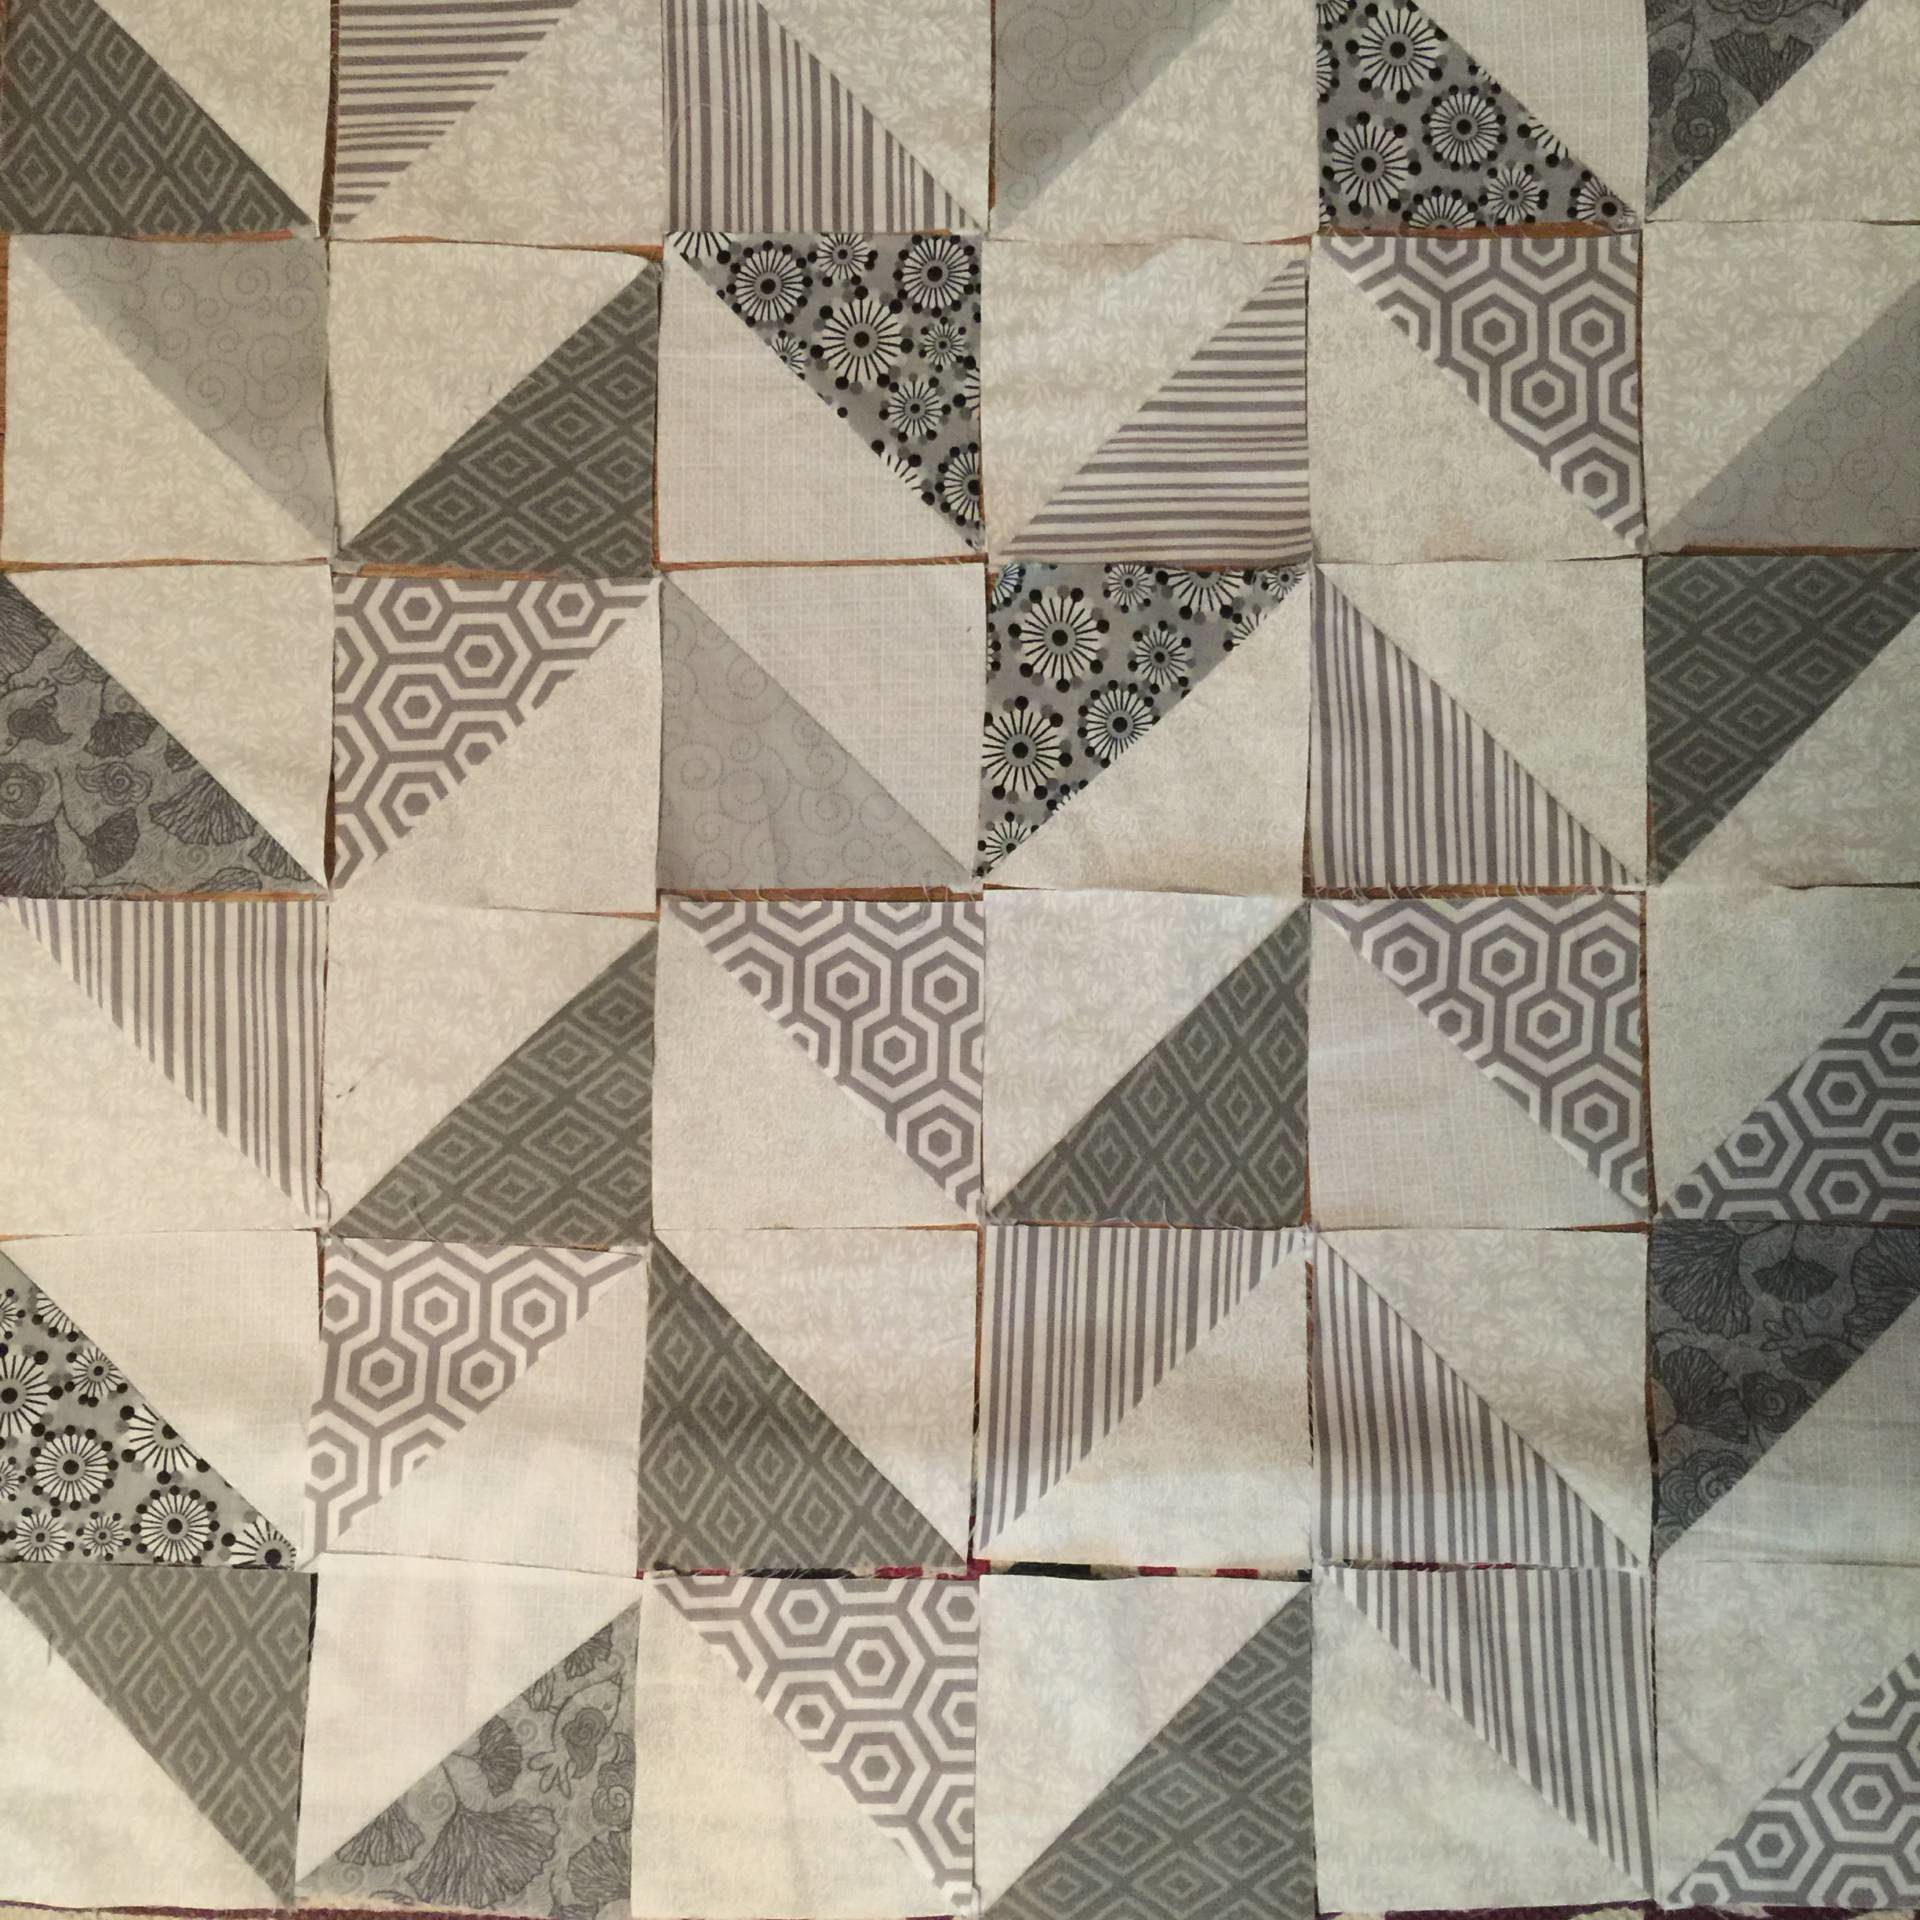 half square triangle layout in the herriingbone pattern for a pillow cover